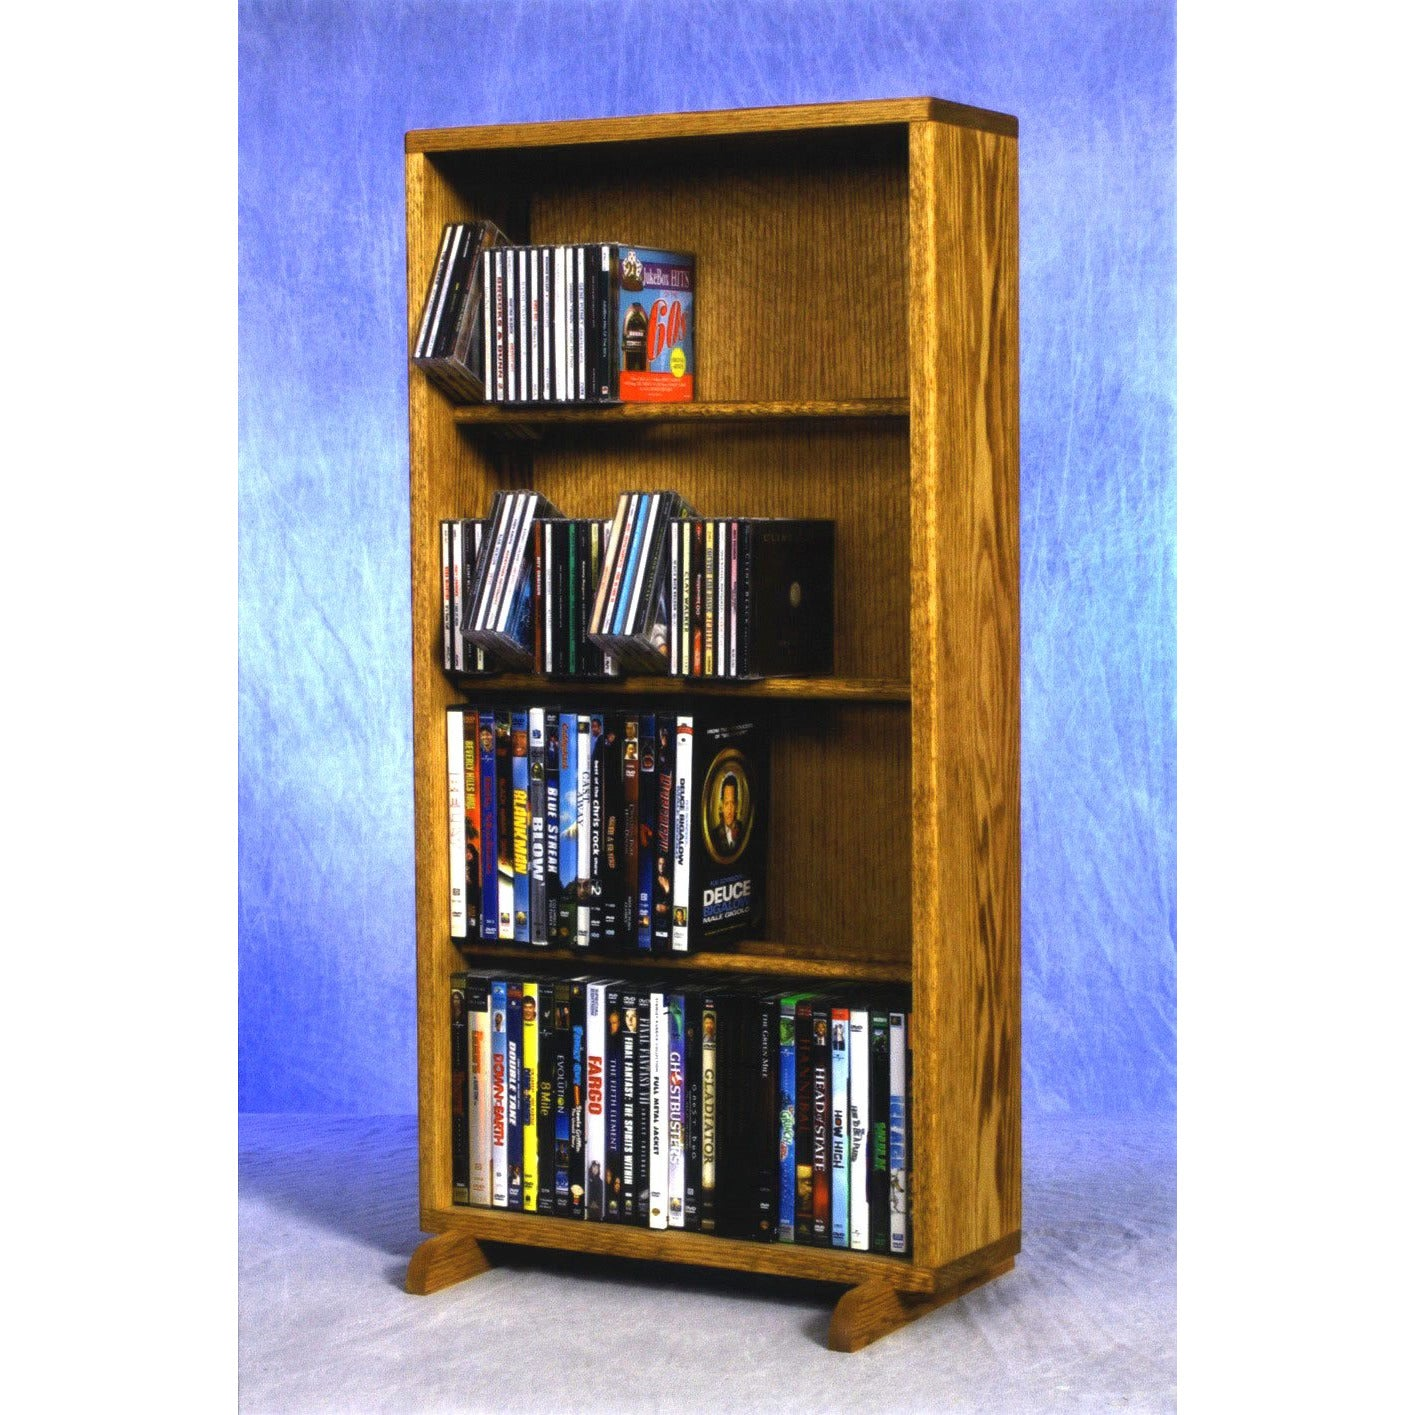 Model 415-18 CD/DVD/VHS Combination Rack